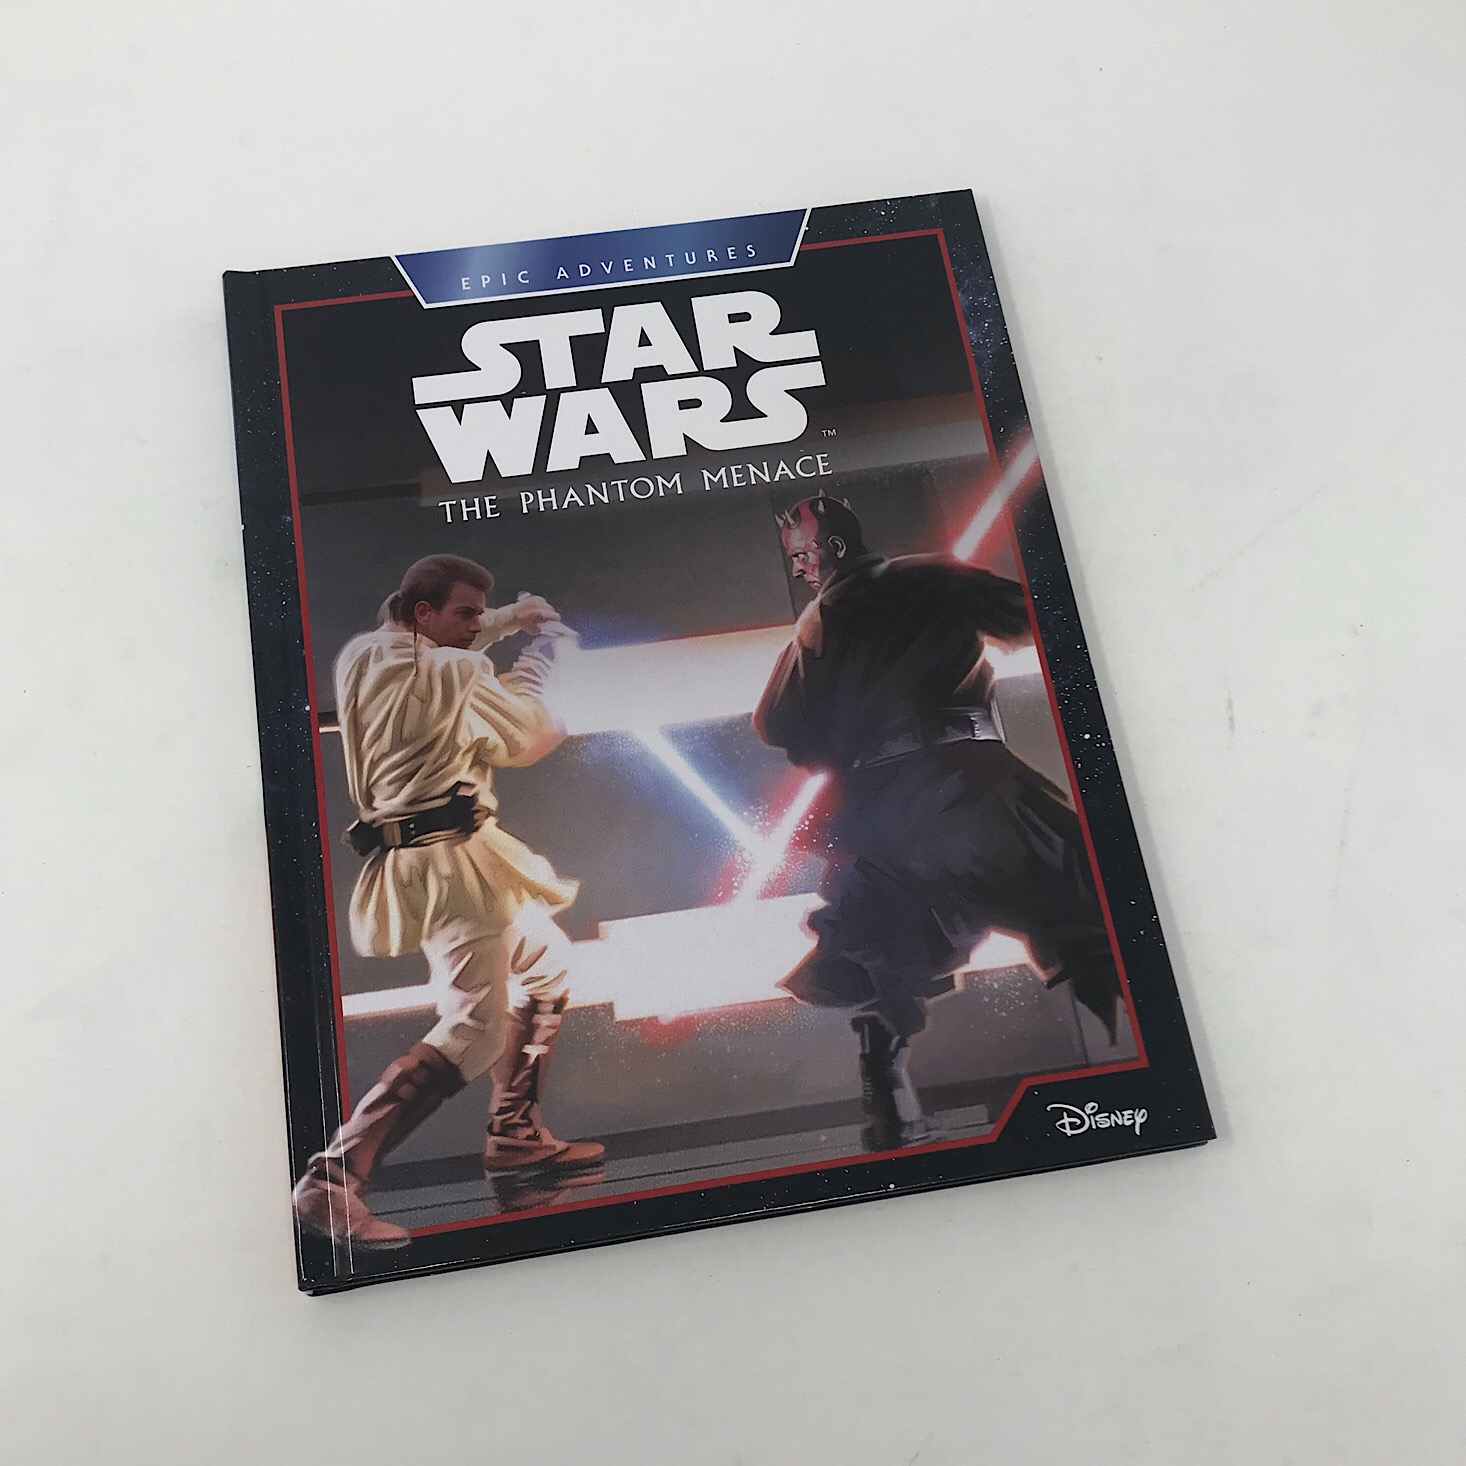 Star Wars Epic Adventures: The Phantom Menace